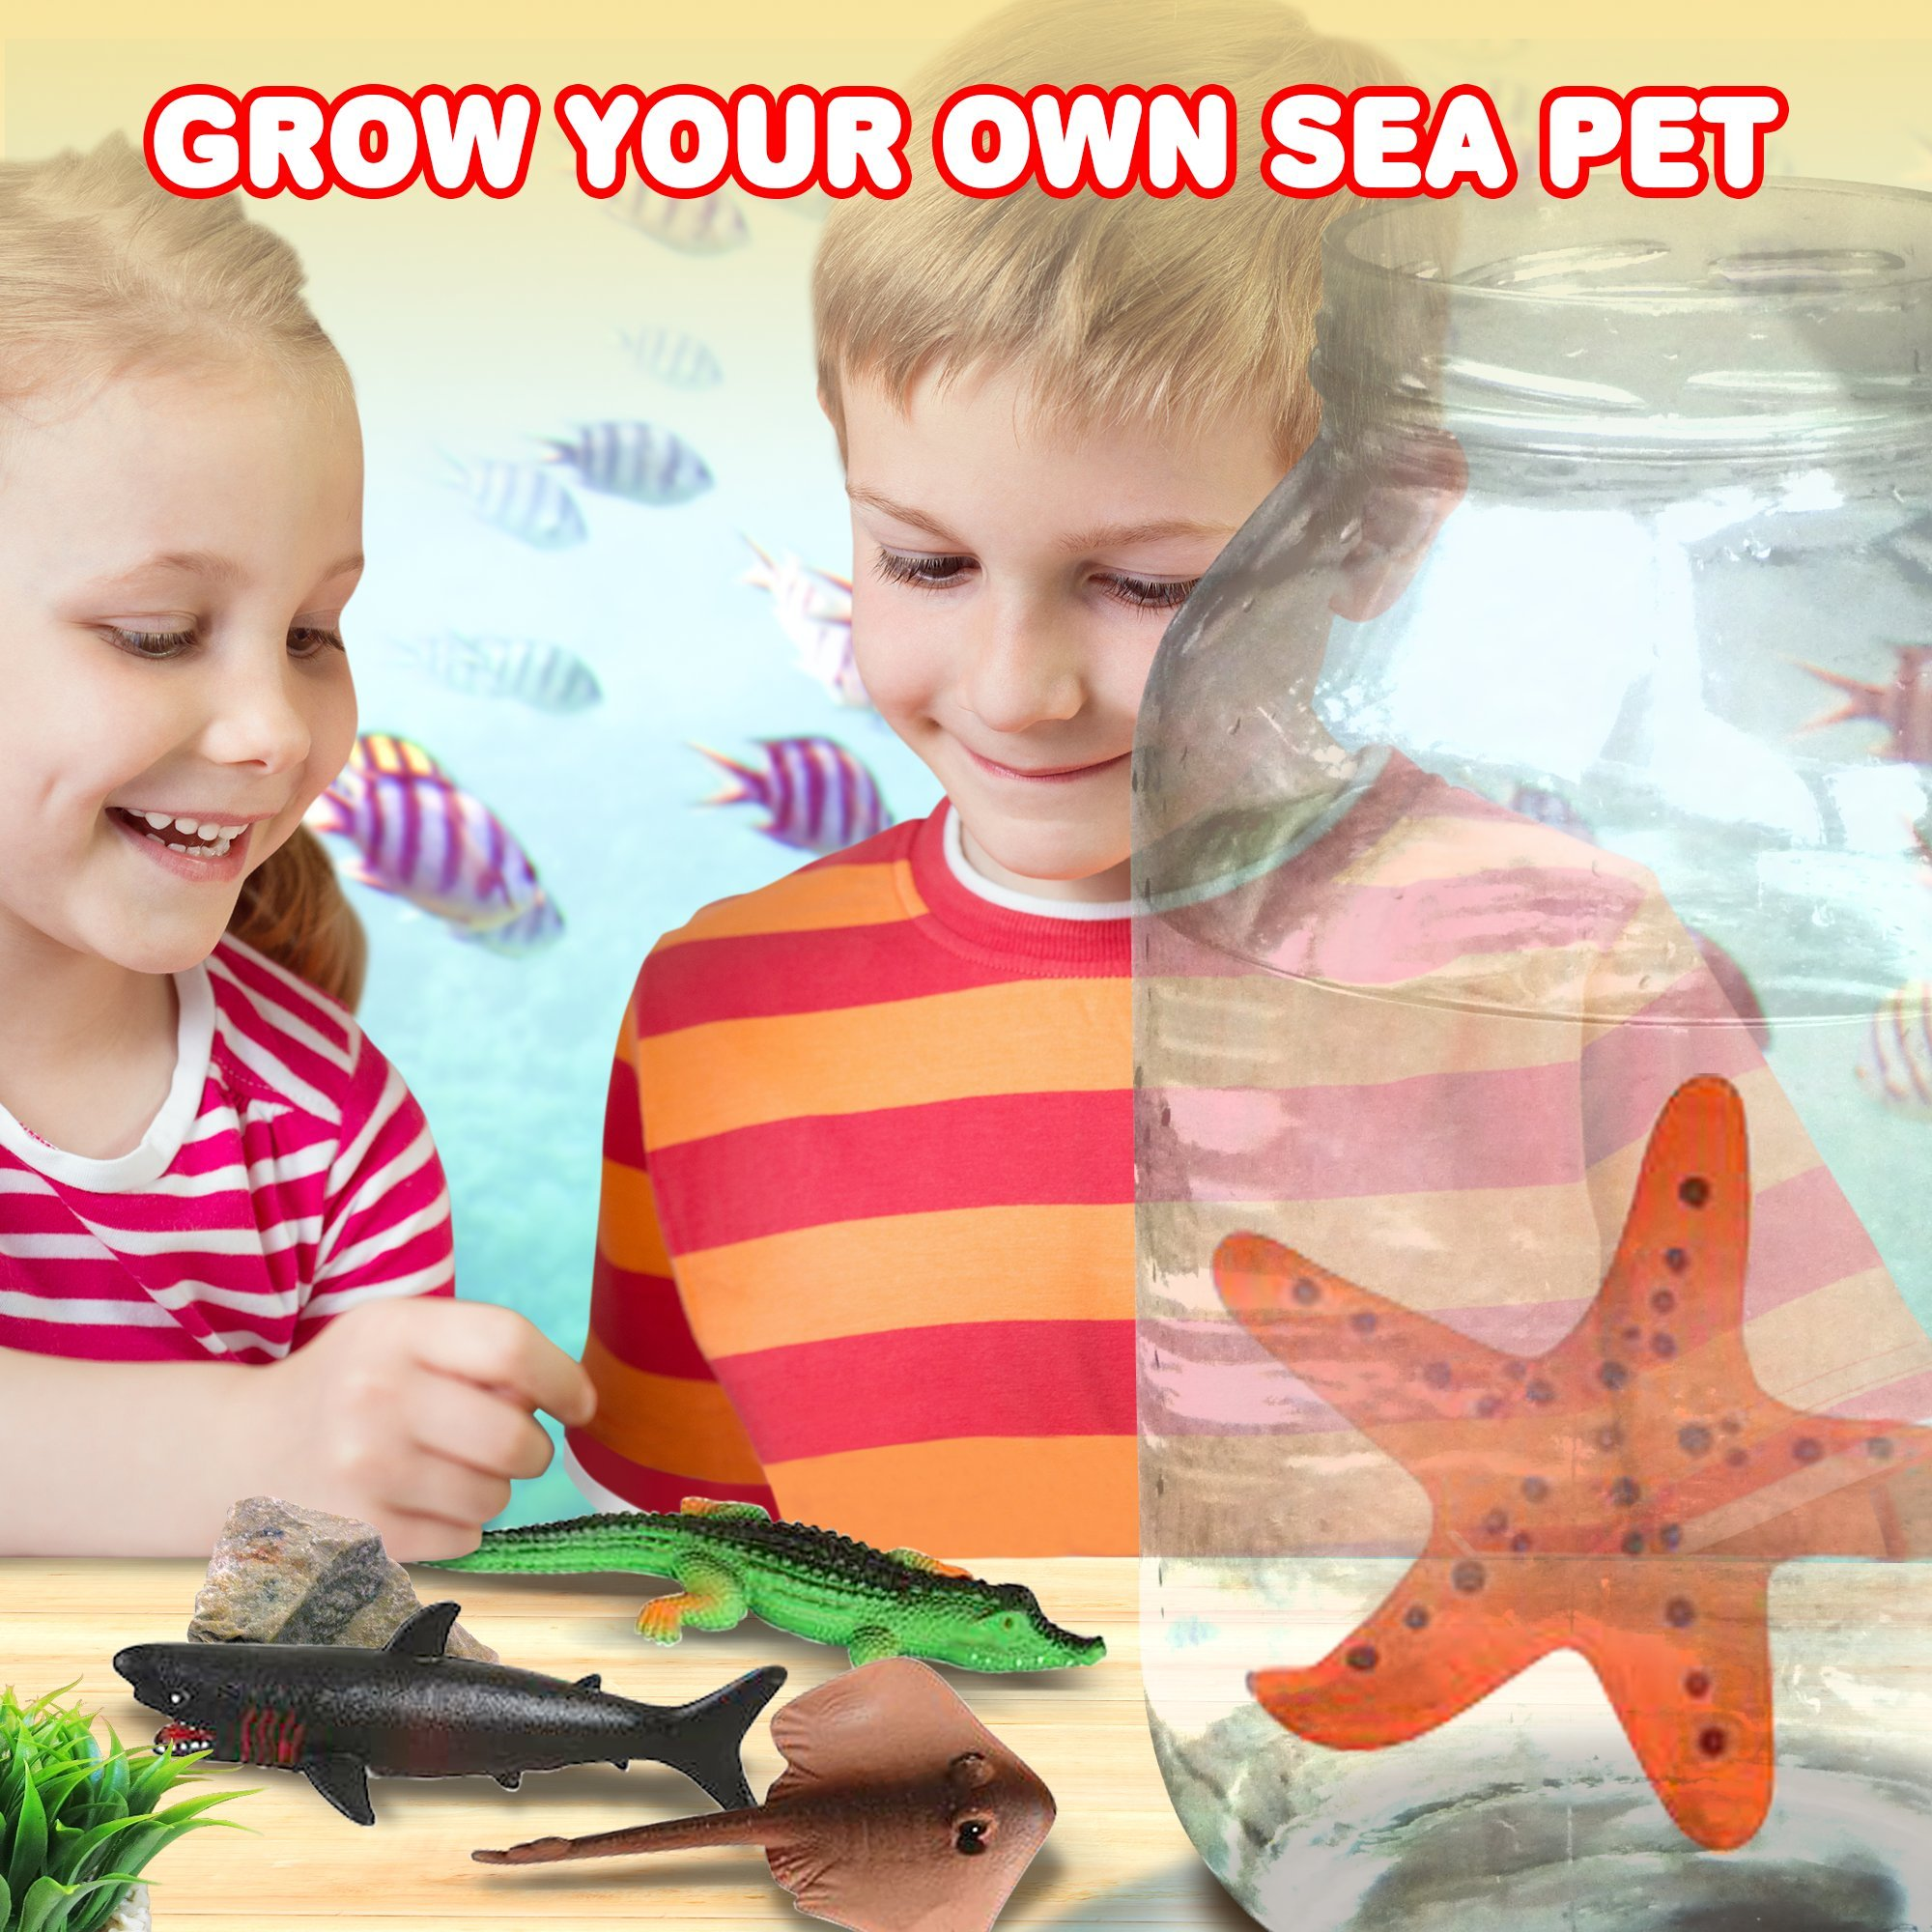 ArtCreativity Growing Sea Animals 6 Different Water Expanding Sea Creatures  Grows 6X Larger   Amazing Sensory Jelly-Like Toy   Fun & Educational Gift for Boys & Girls. by ArtCreativity (Image #7)